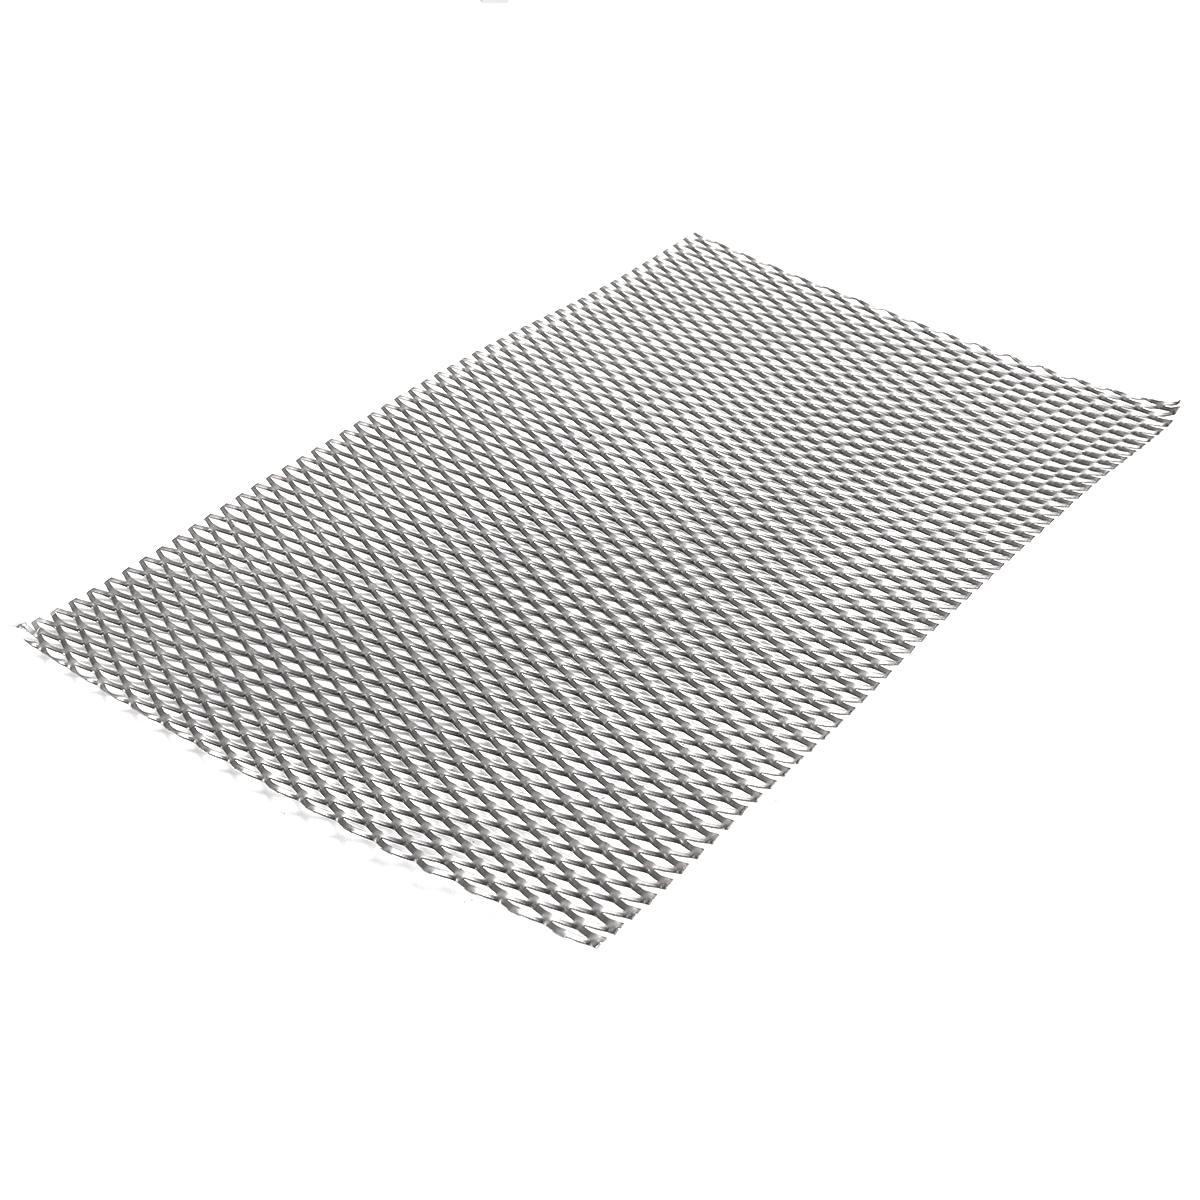 1pc Practical Metal Titanium Mesh Sheet Heat Corrosion Resistance Silver Perforated Expanded Plate 200mm*300mm*0.5mm|Tool Parts|   - AliExpress